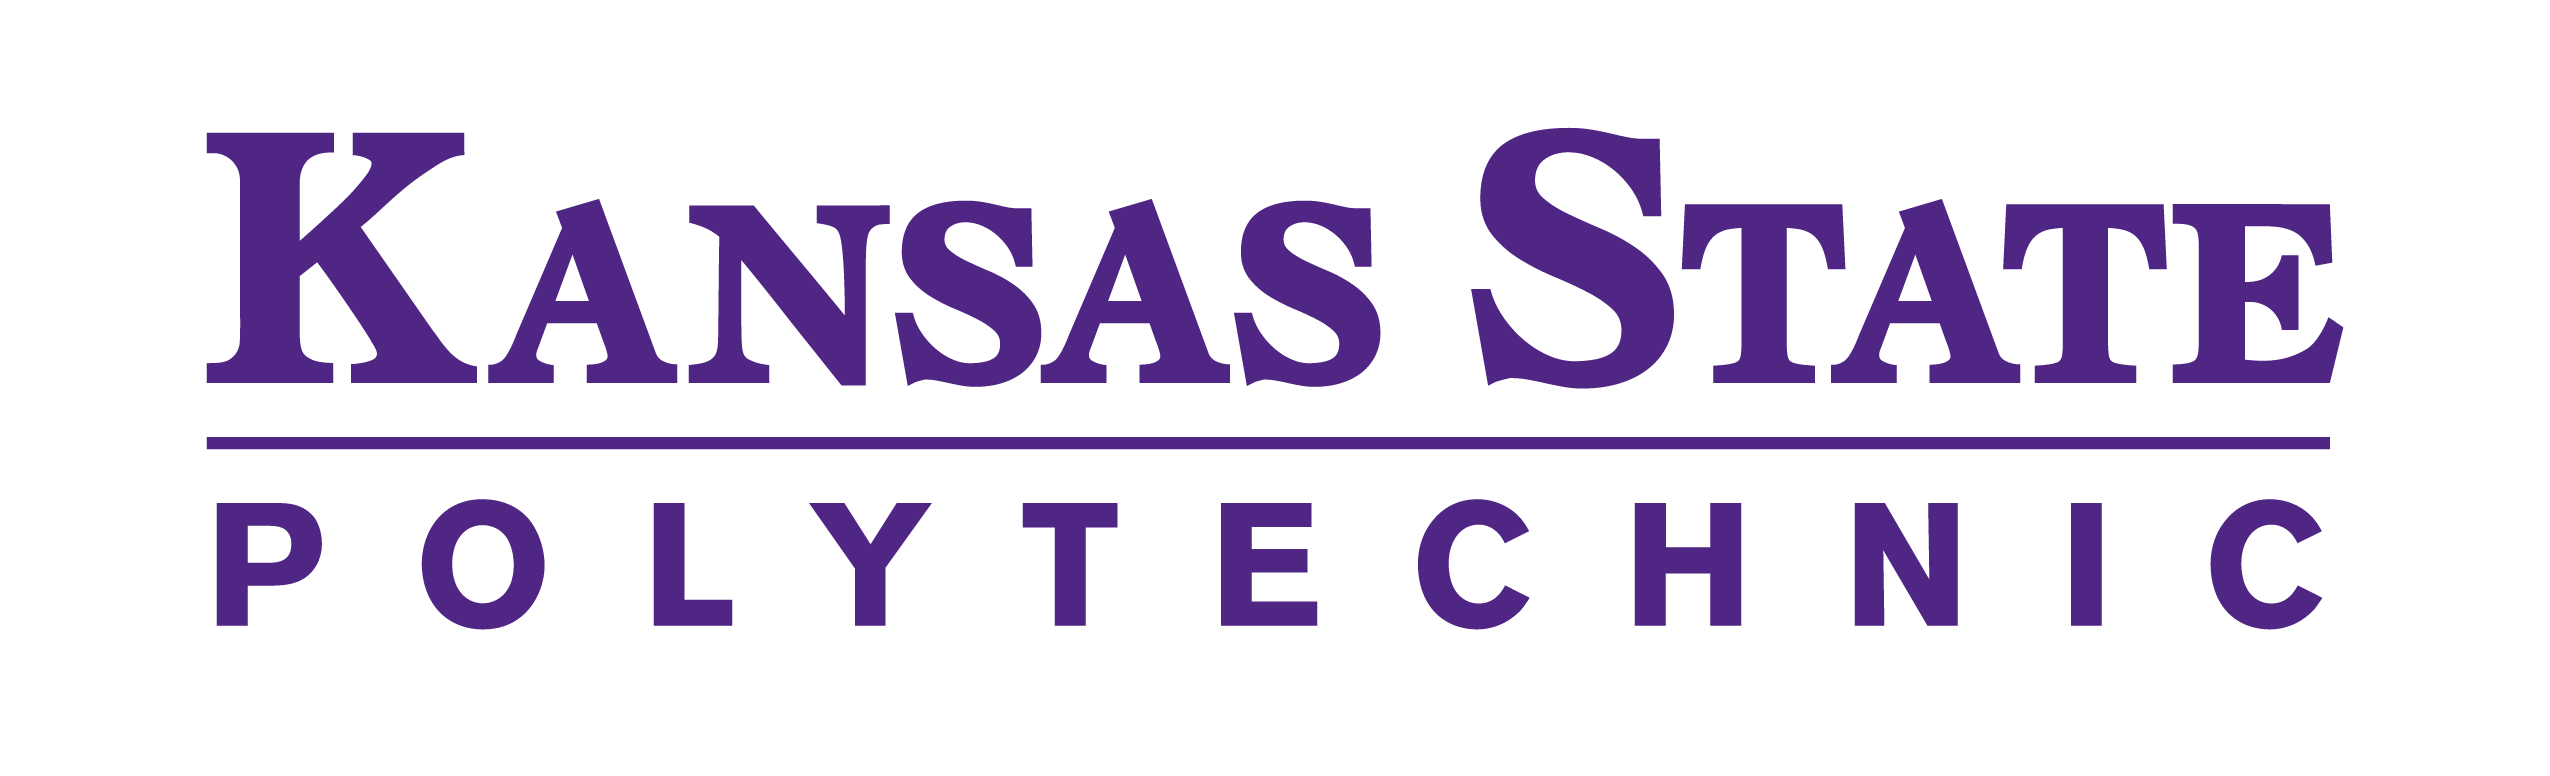 Kansas state logo clipart png picture black and white Kansas state university logo clipart - ClipartFest picture black and white